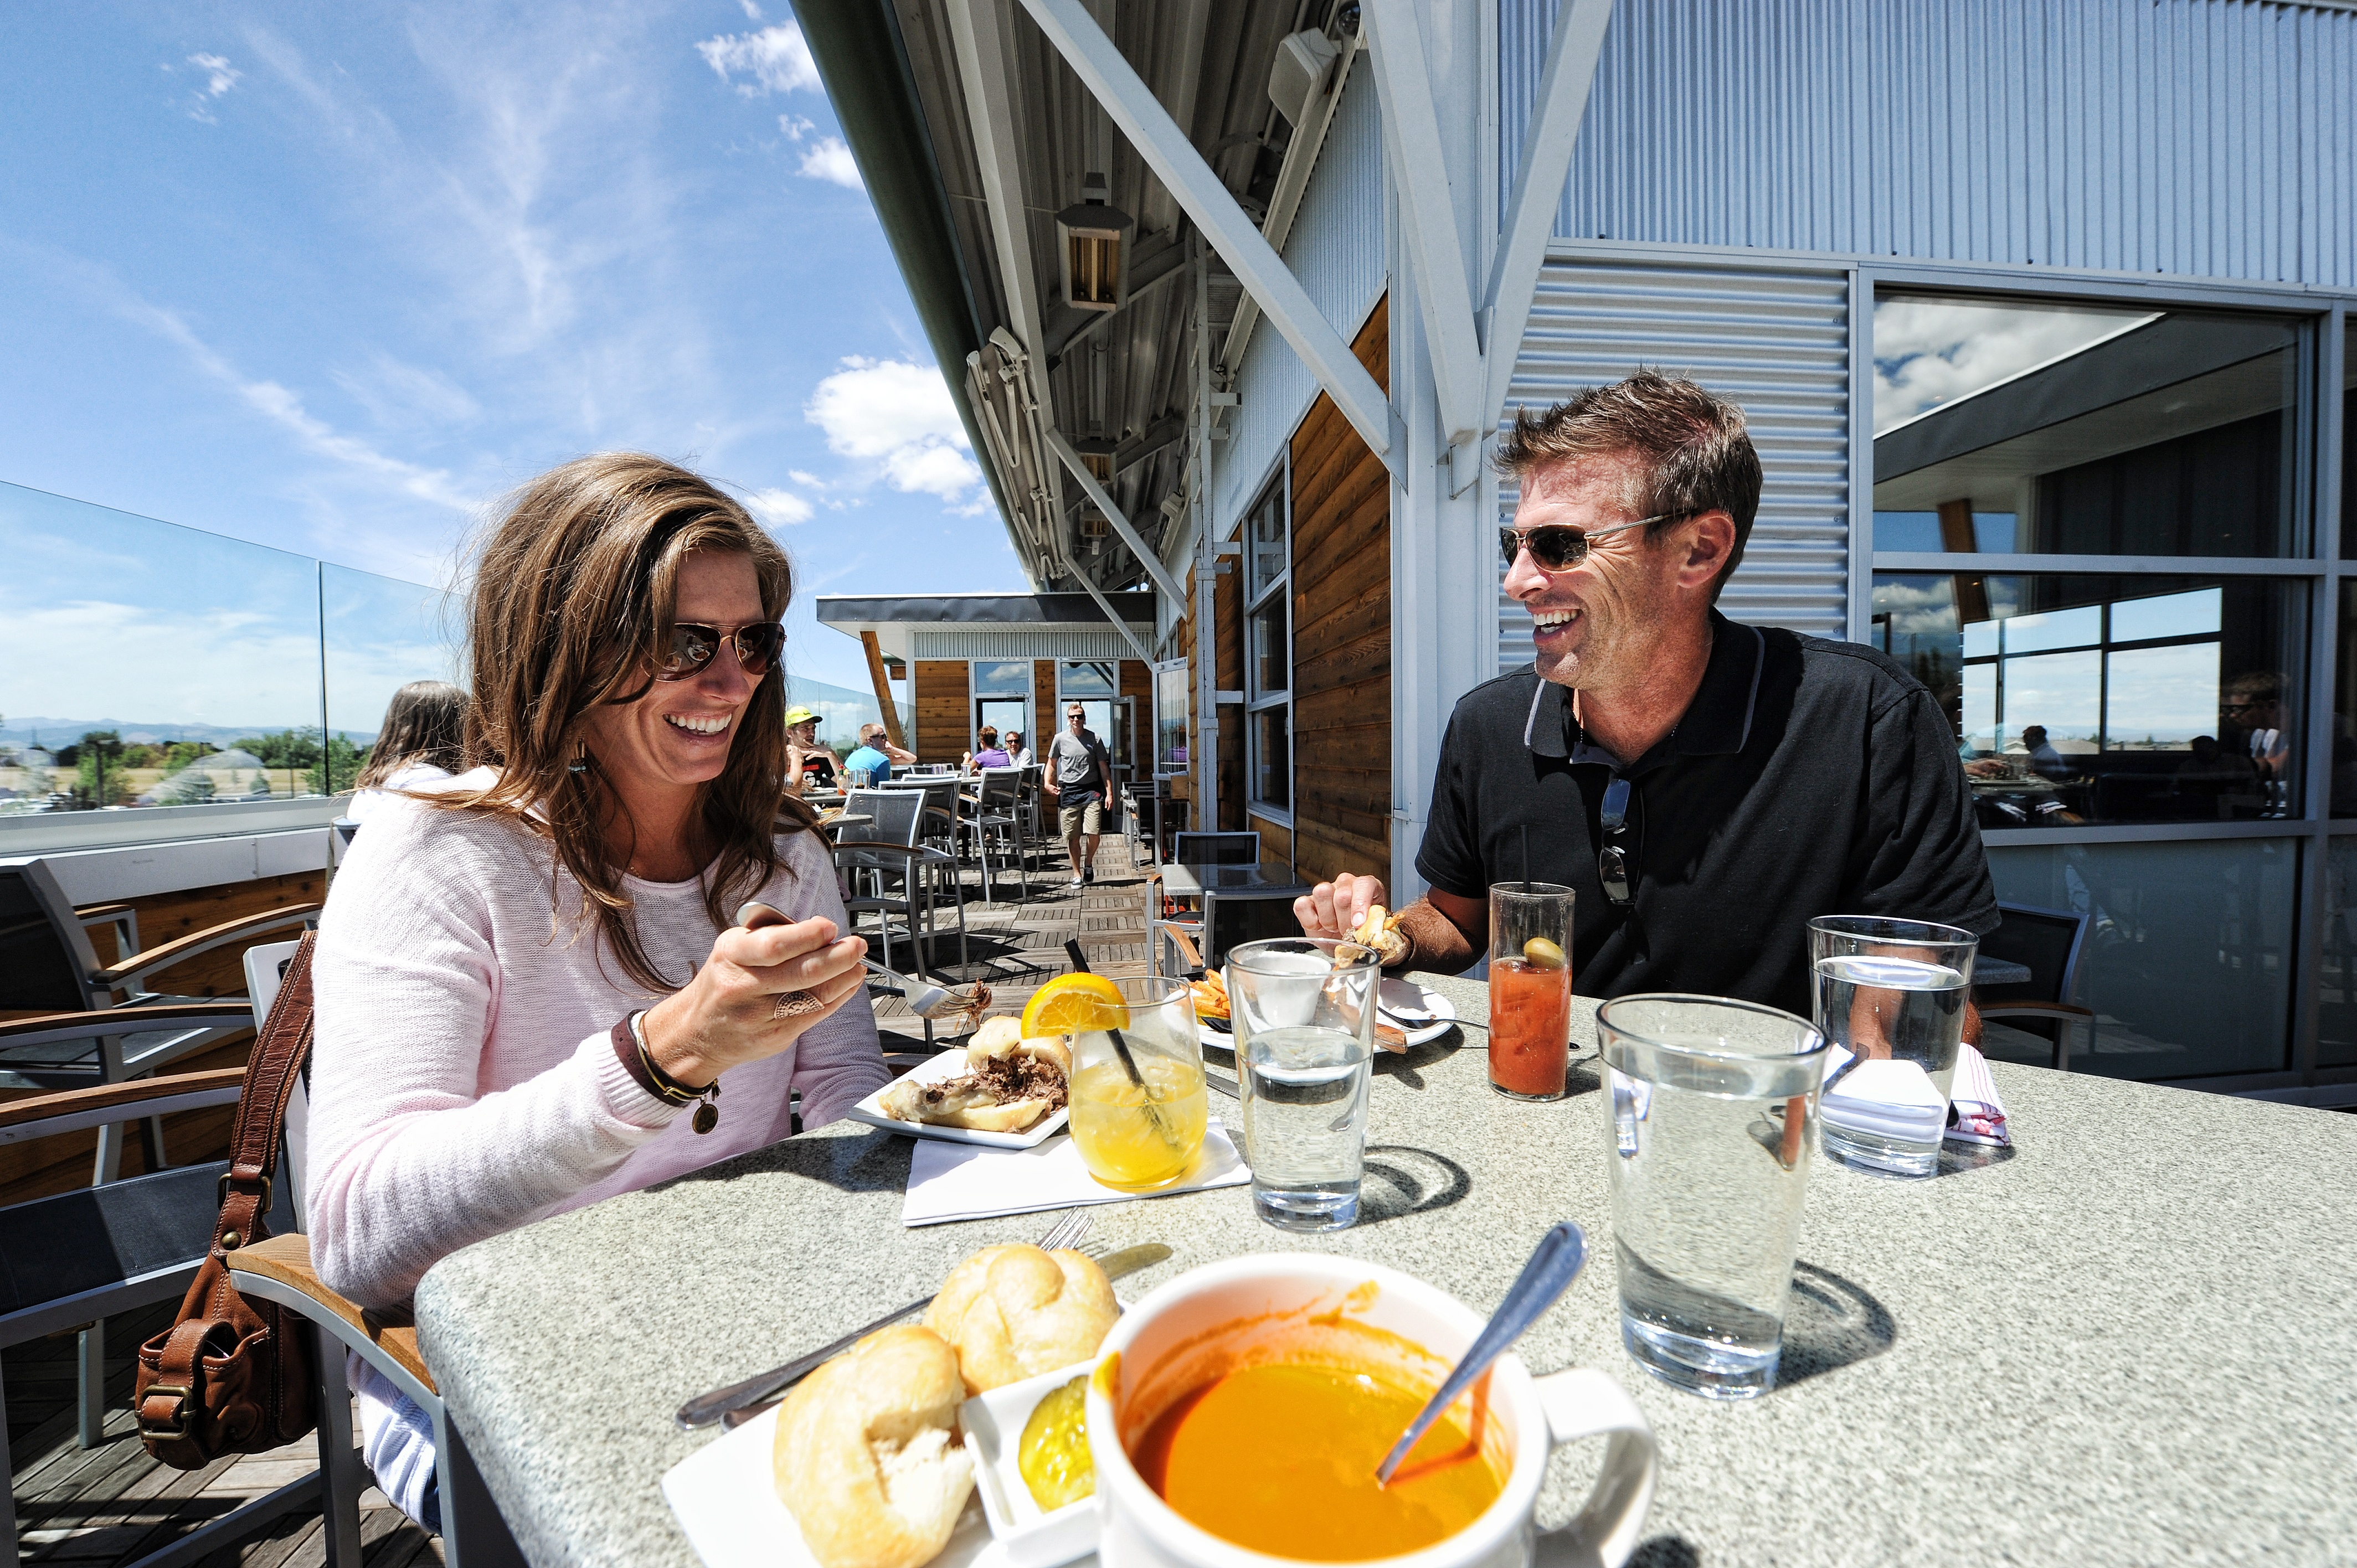 Patio Dining in Bozeman, Montana